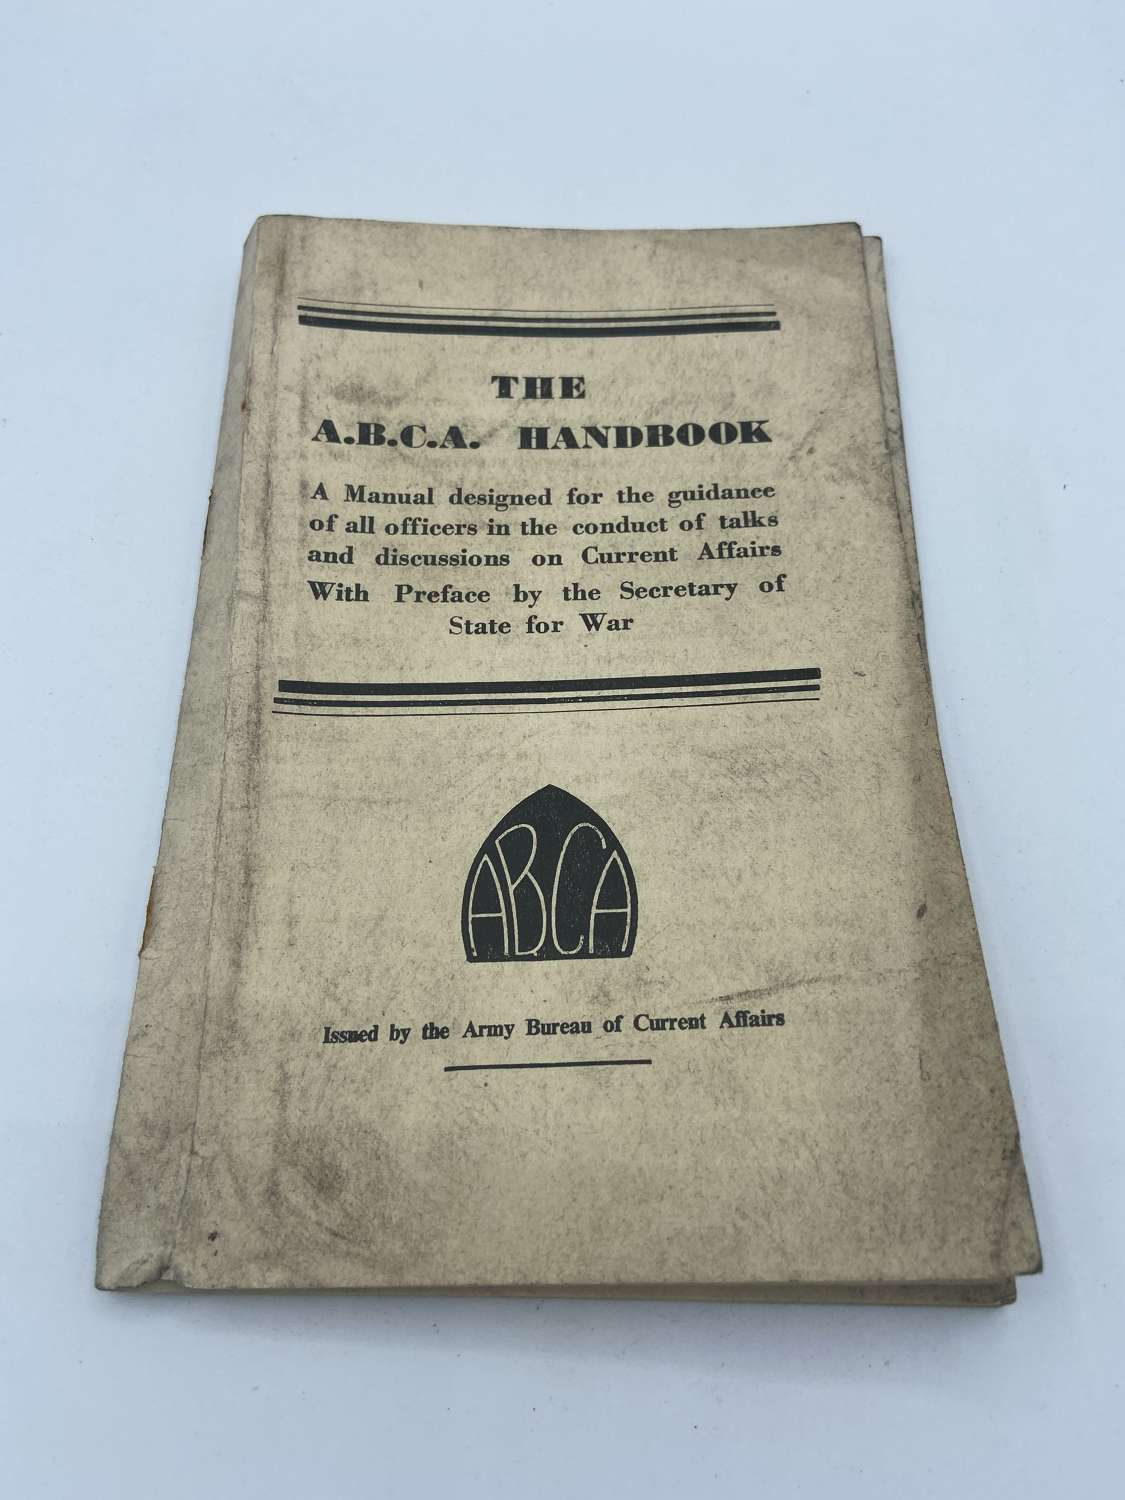 WW2 1942 The ABCA Handbook OfficerGuidance Discussions Current Affairs